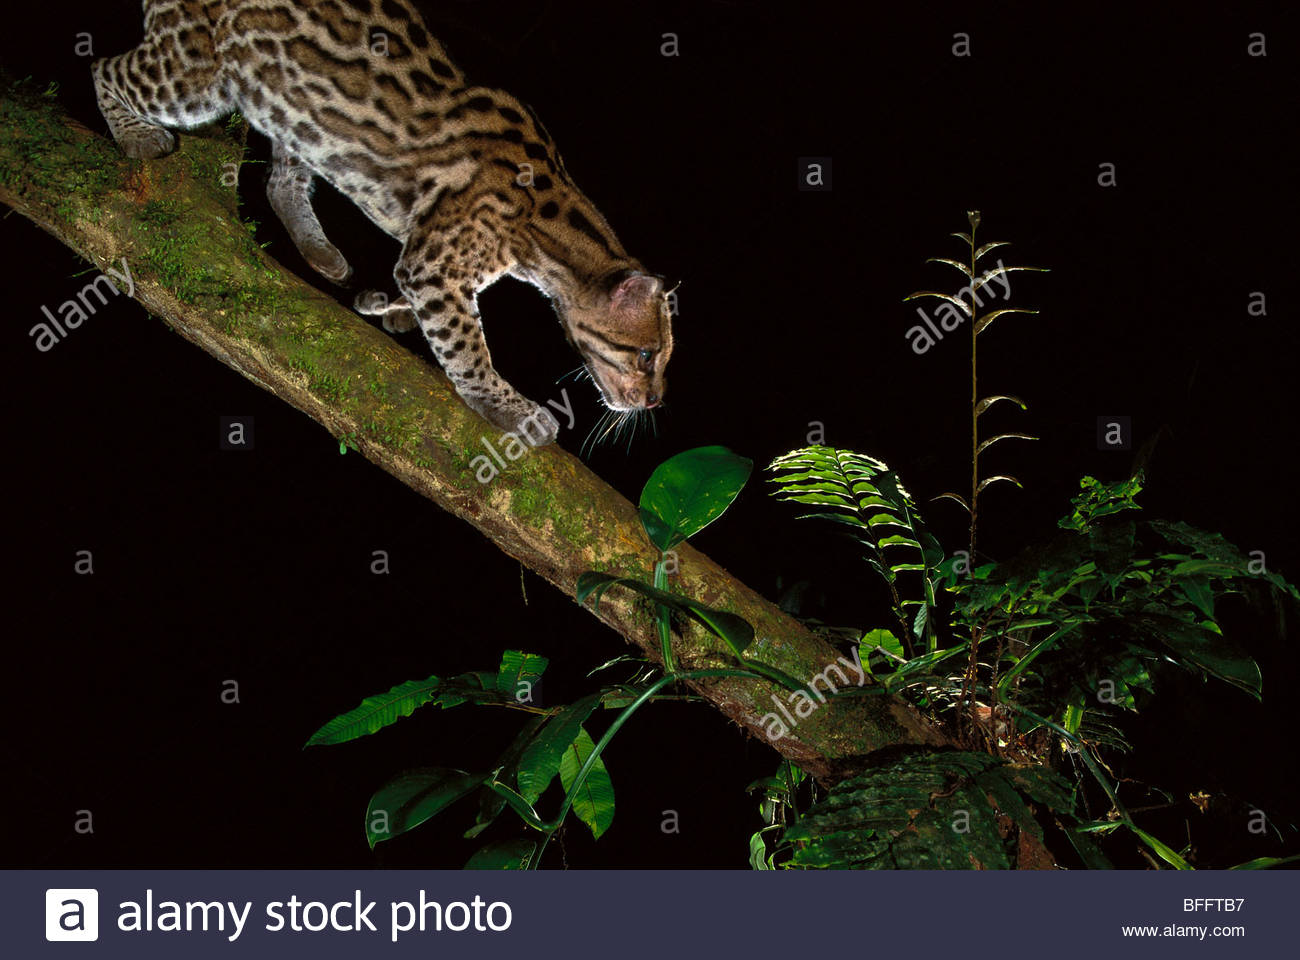 Ocelot caught by camera trap, Leopardus pardalis, Tambopata National Reserve, Peru - Stock Image